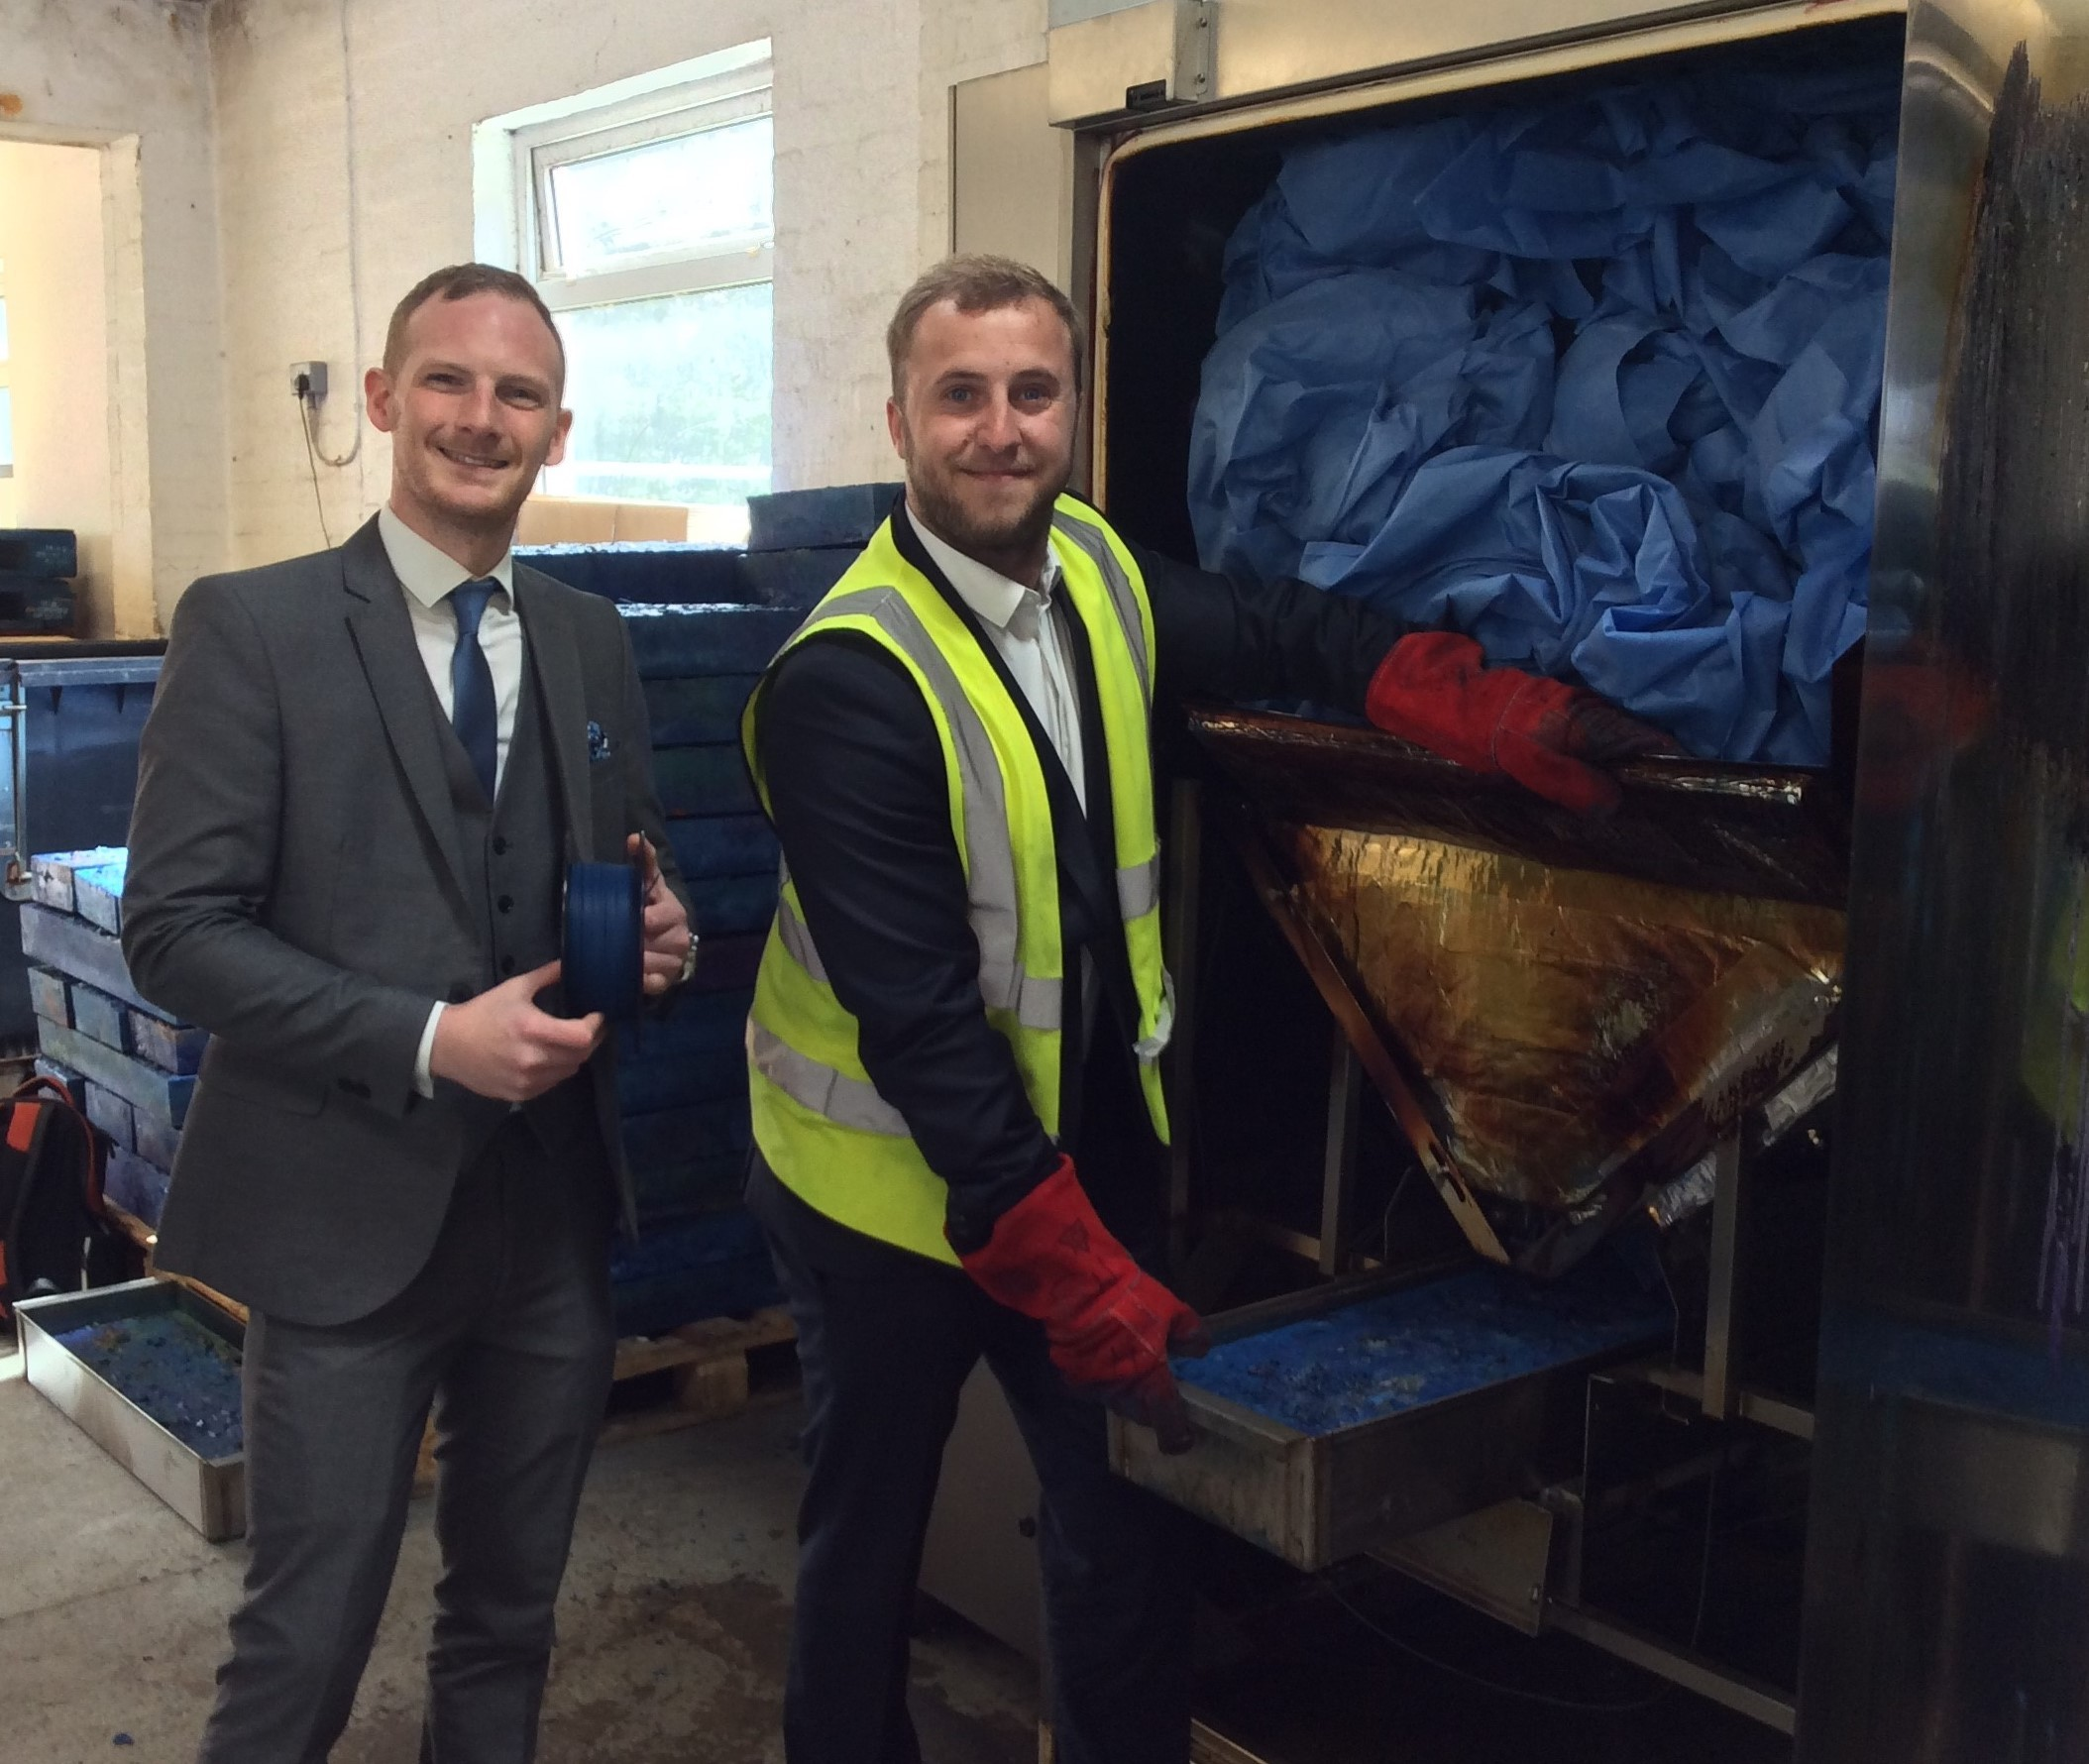 IT'S A WRAP: Dr Ashley Pursglove (left) with 3D printer filament produced from waste medical wrapping, and Thomas Davison-Sebry, sales and marketing director for TCG, show off the Sterimelt machine at St Woolos Hospital